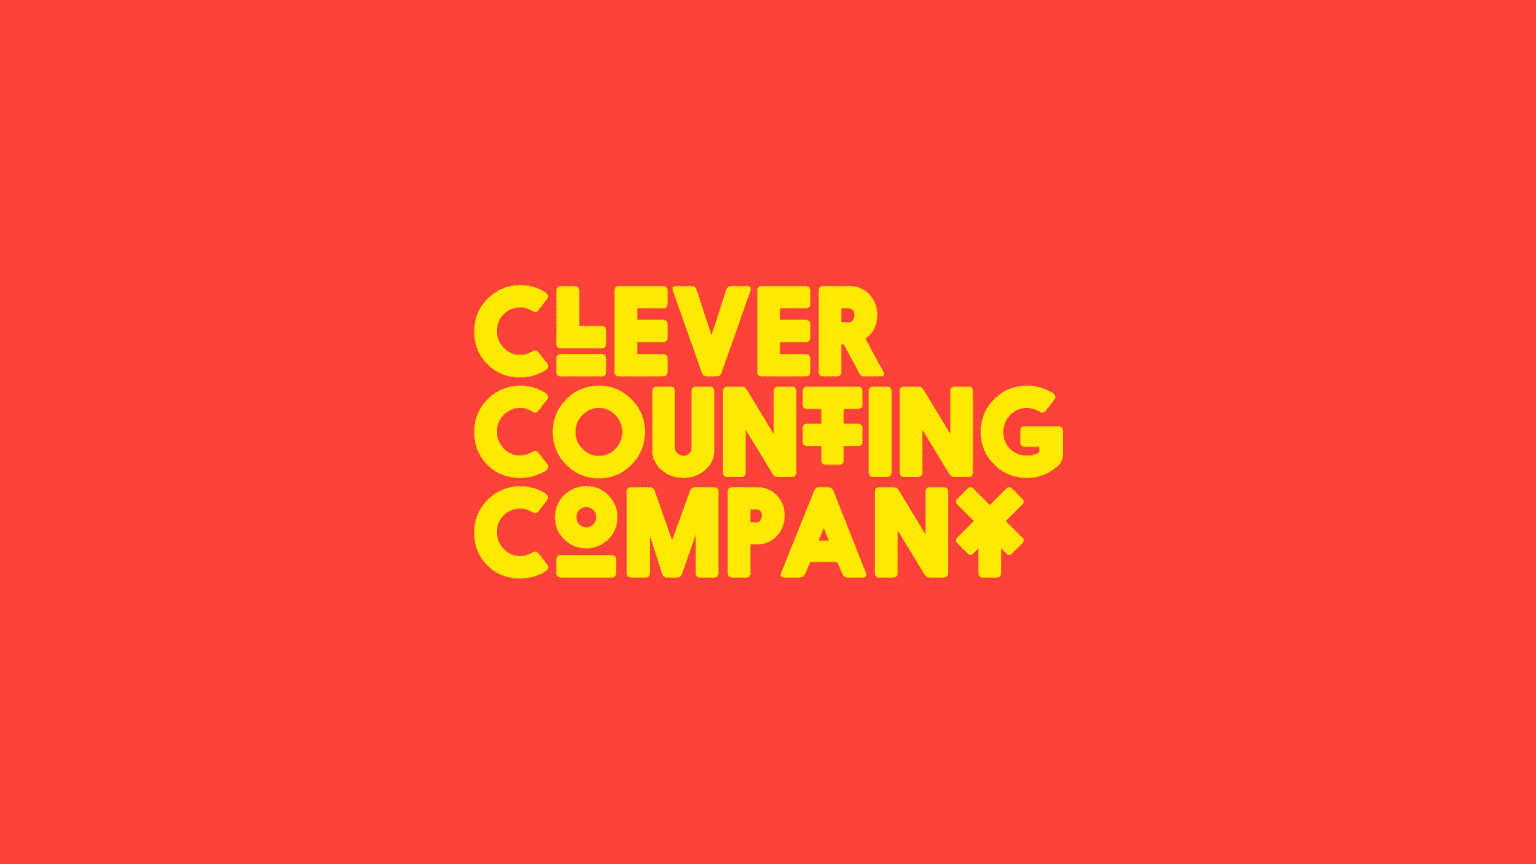 Clever Counting Company